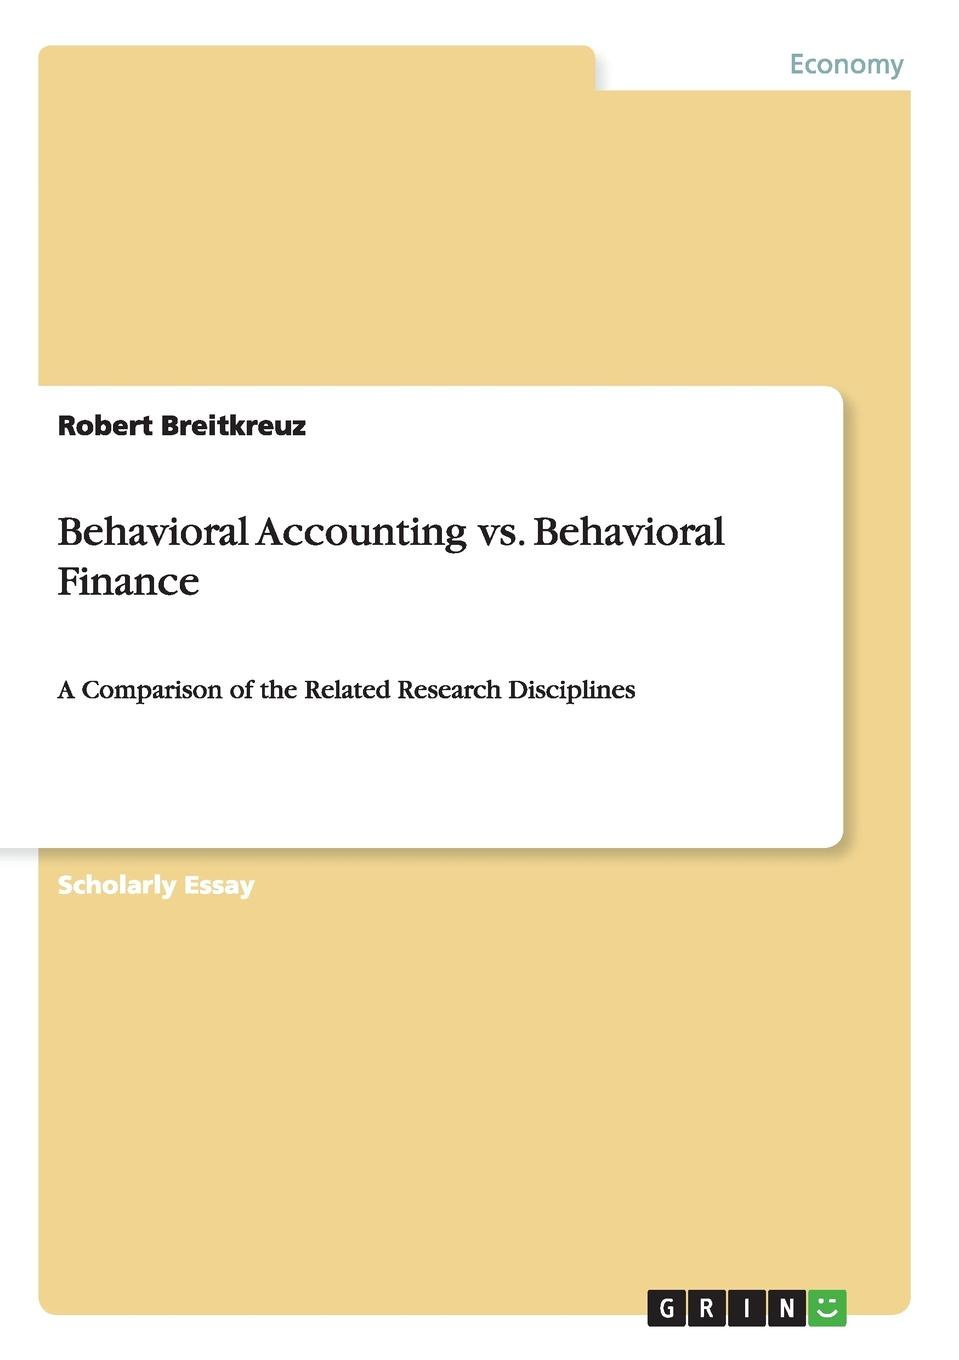 цена на Robert Breitkreuz Behavioral Accounting vs. Behavioral Finance